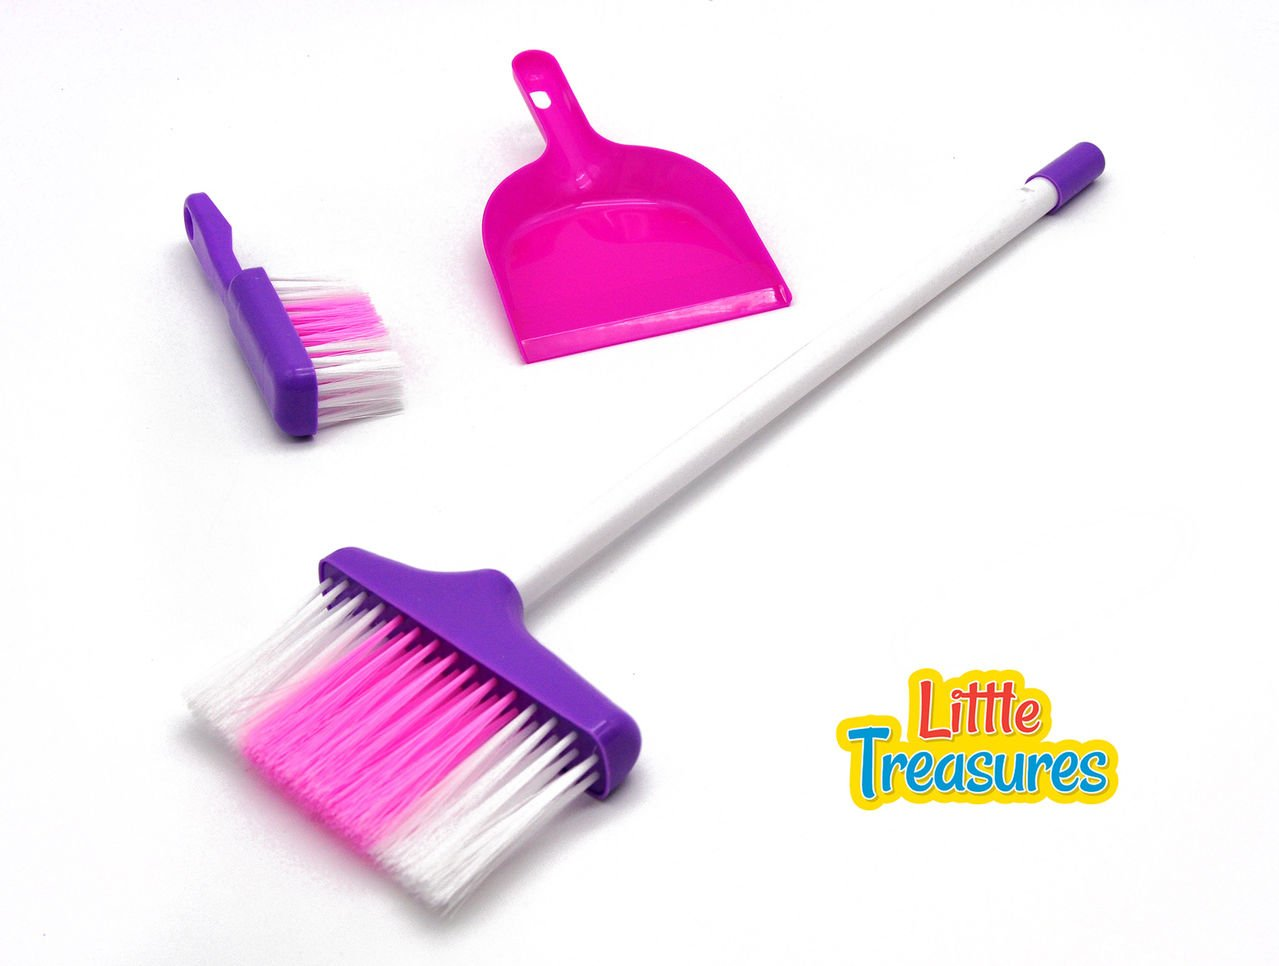 Little Treasures Little Helper 3-Piece Broom Set for Ages 3 and up with dustpan, hand broom, and long broom